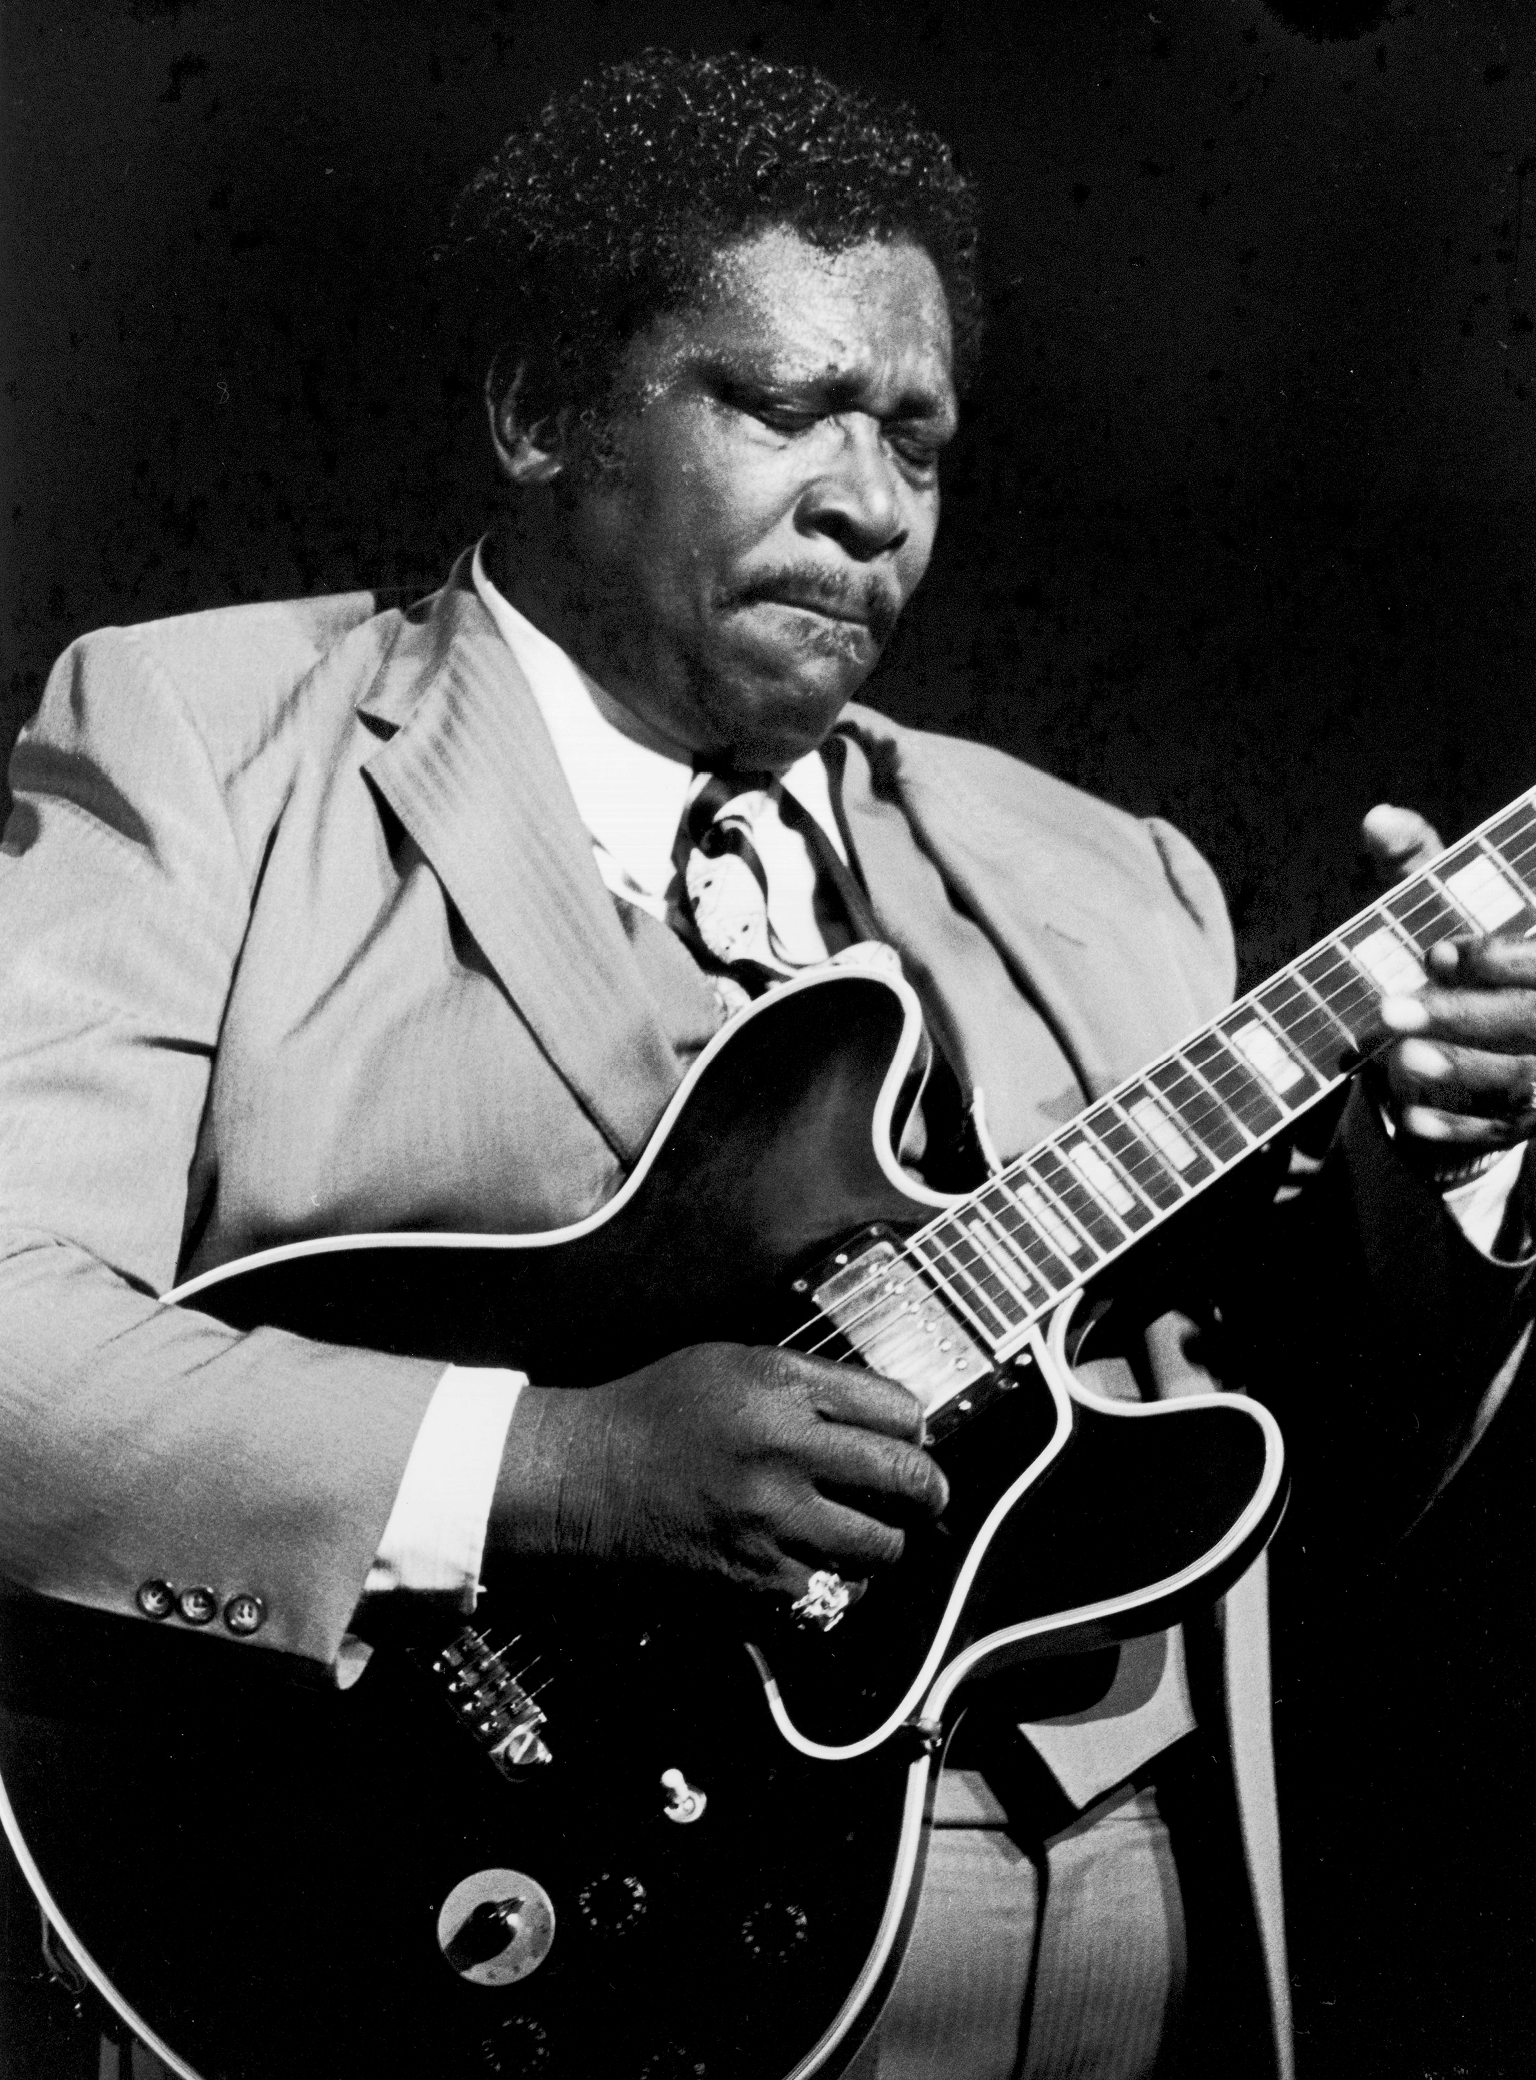 D 70527-04  B B King.   .  American blues guitarist and singer-songwriter B. B. King pictured performing live on stage at the Hammersmith Odeon, London, UK, in the mid 1980's., Image: 220172435, License: Rights-managed, Restrictions: , Model Release: no, Credit line: Profimedia, TEMP Camerapress